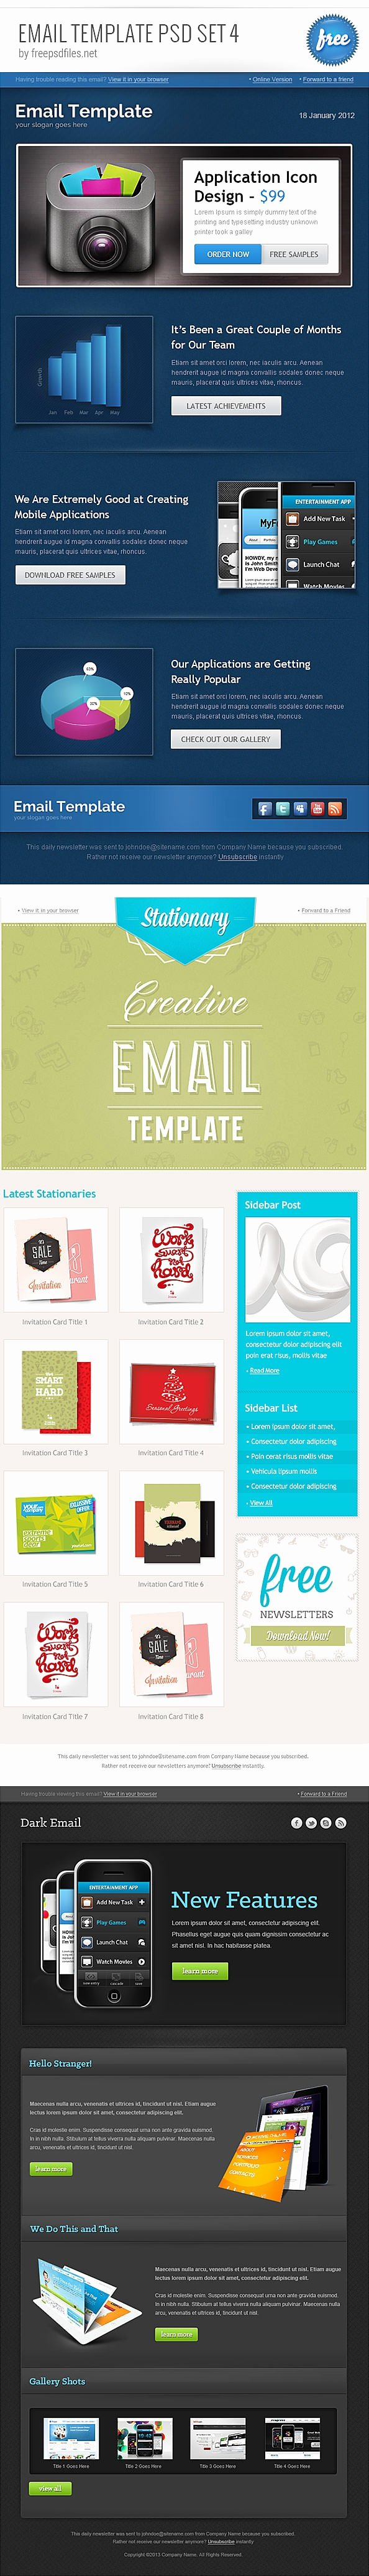 Free Email Template Psd Lovely 25 HTML and Psd Email Newsletters Psd Vector Eps Jpg